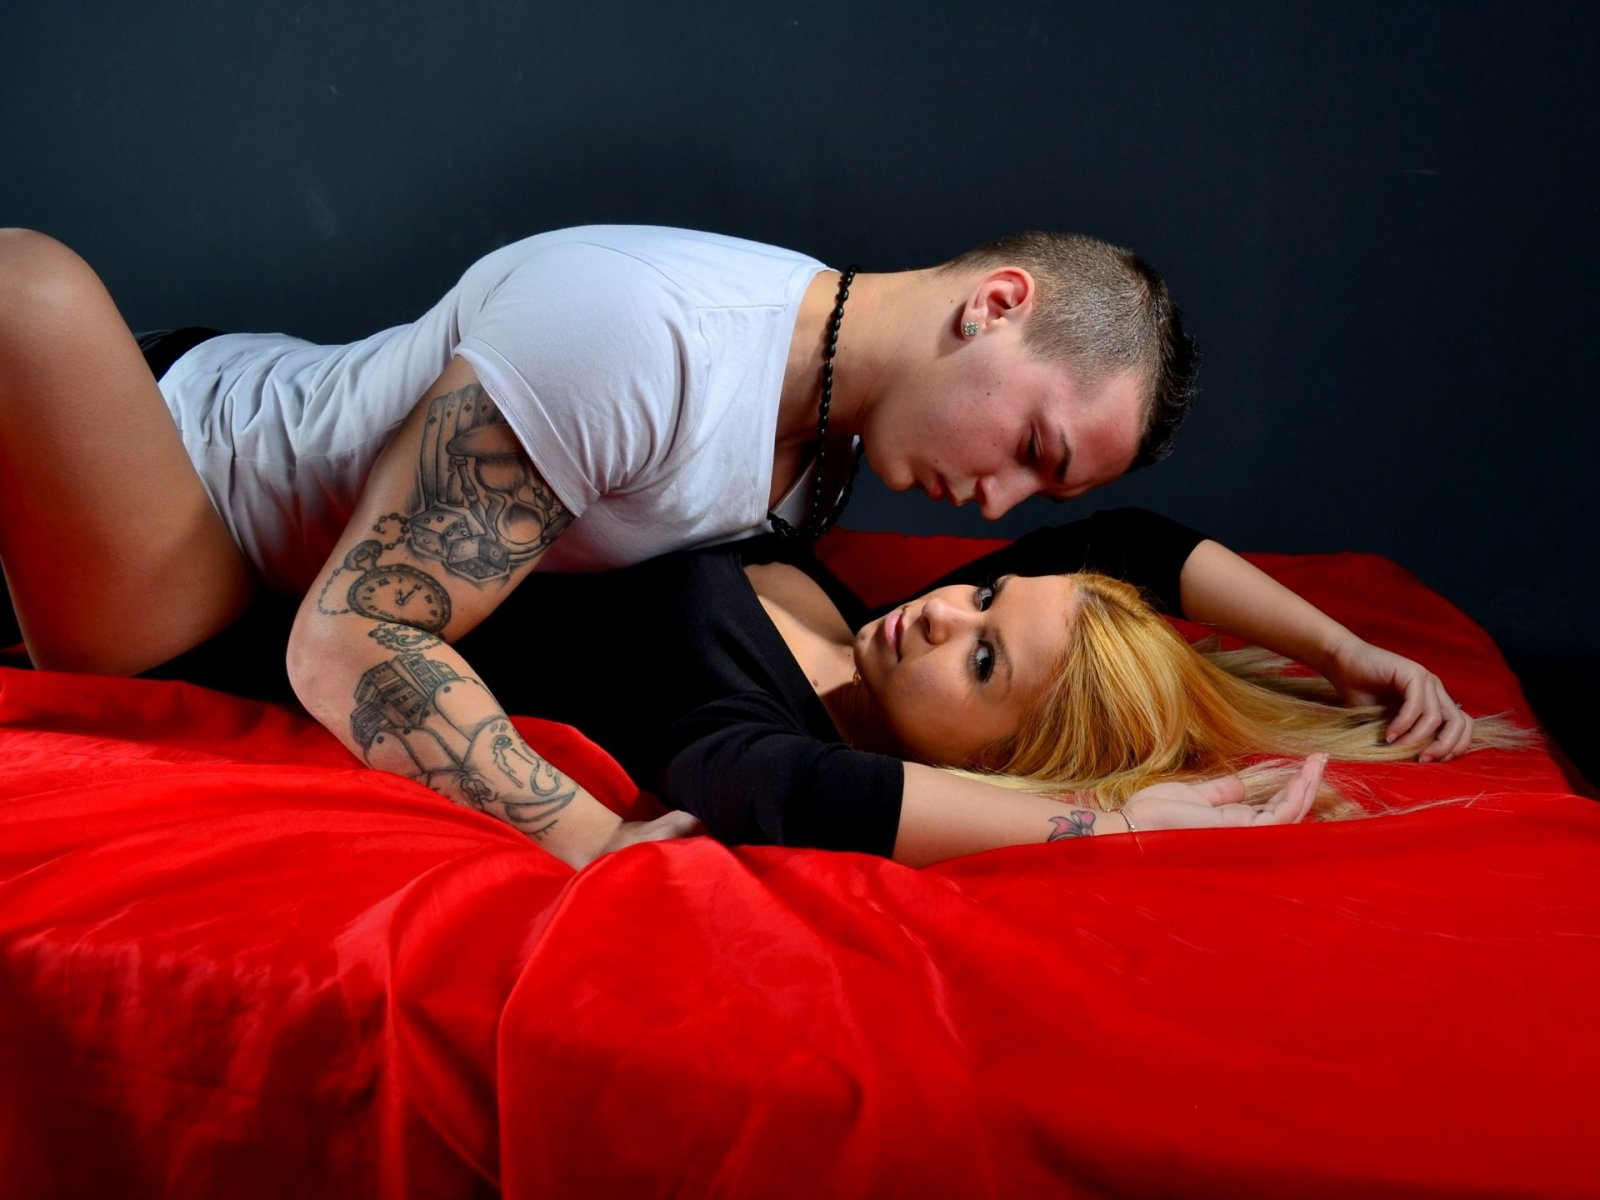 Watch Hot People Lives Sex Threesome For Show Live